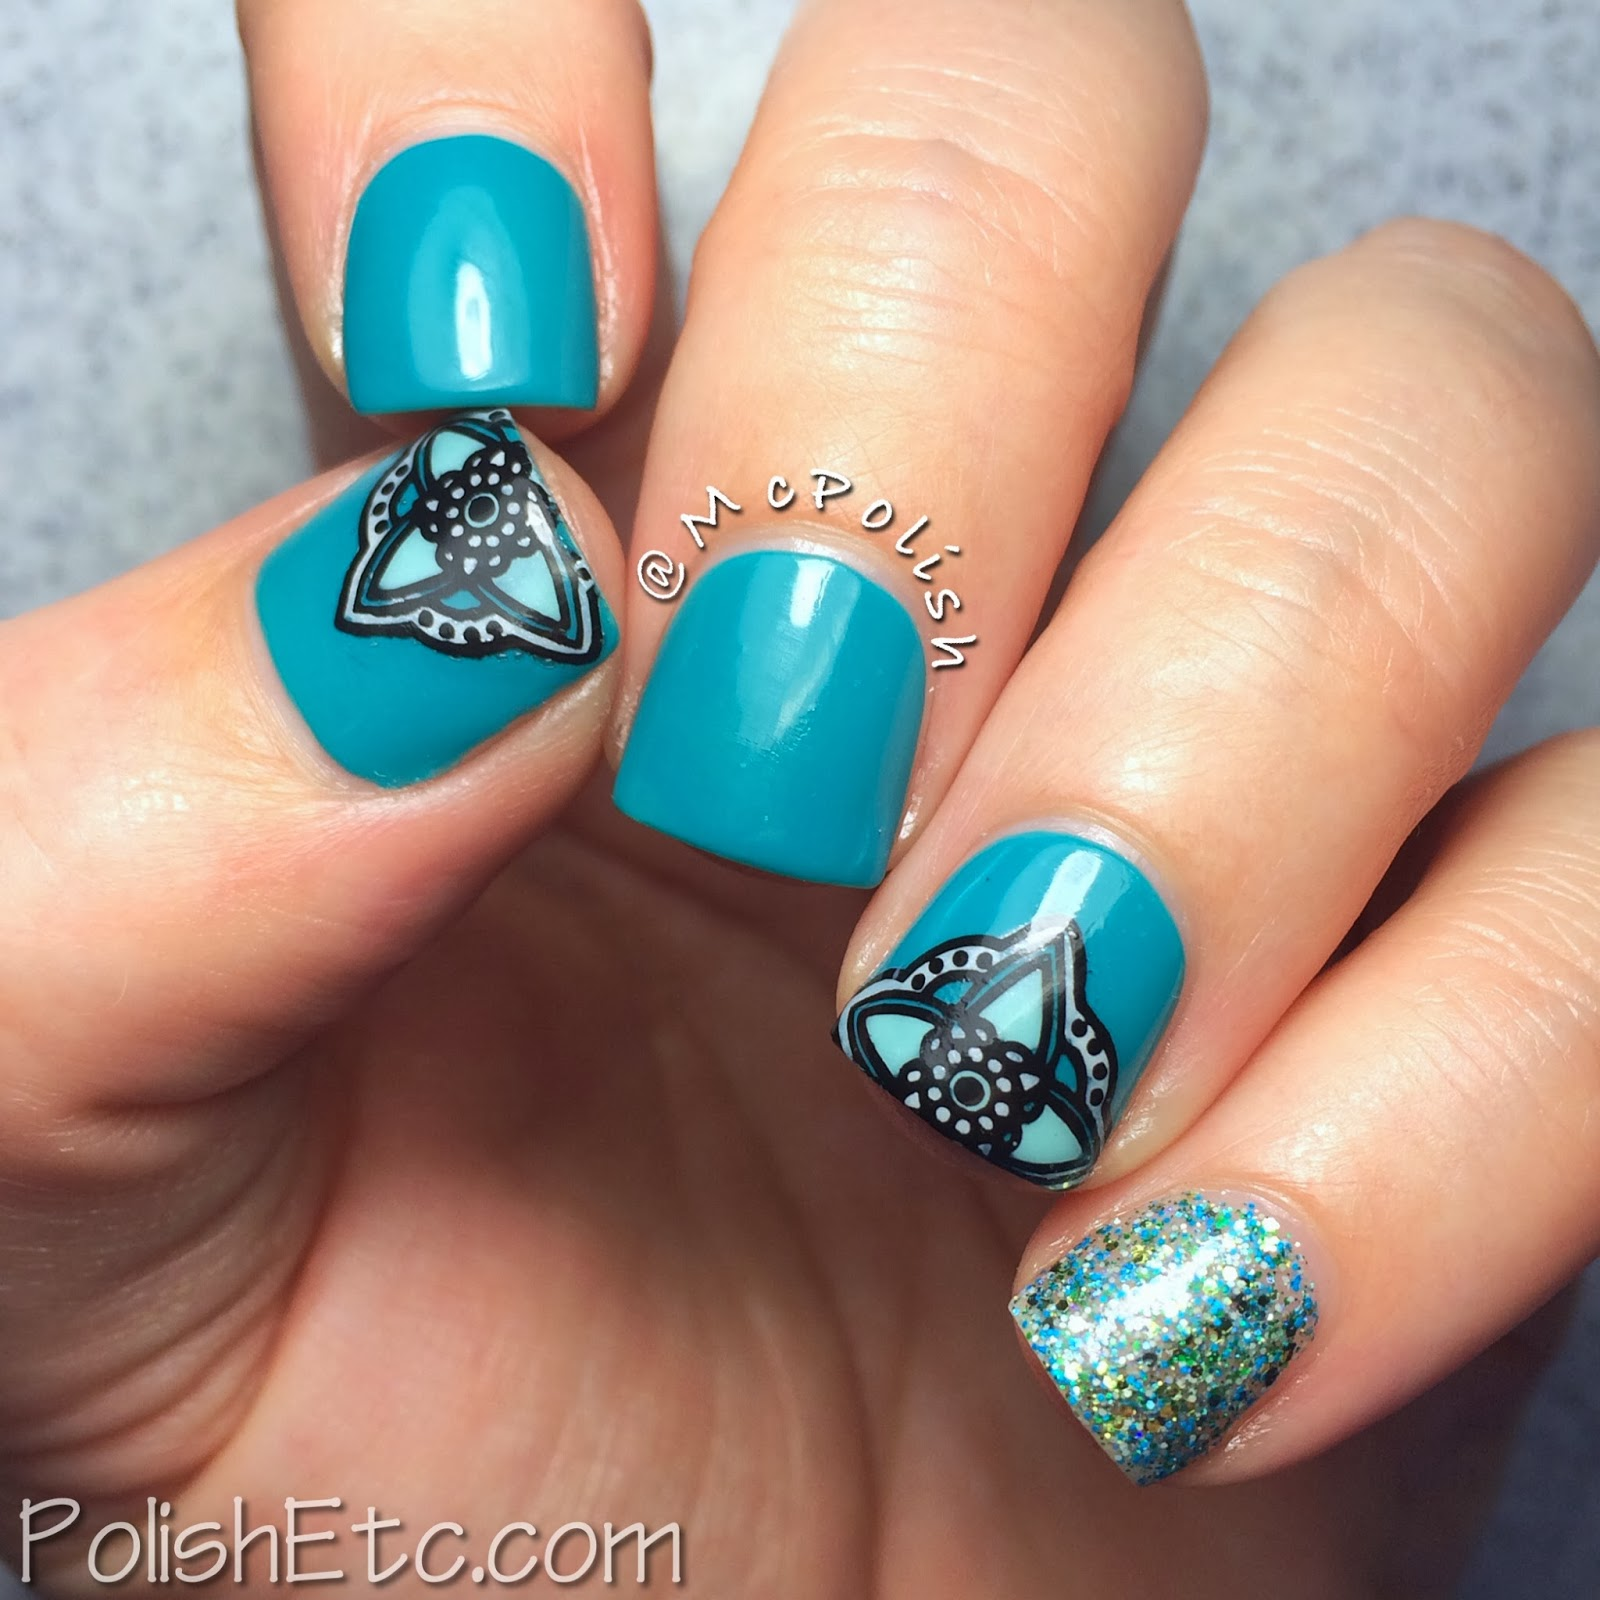 McPolish advanced stamping